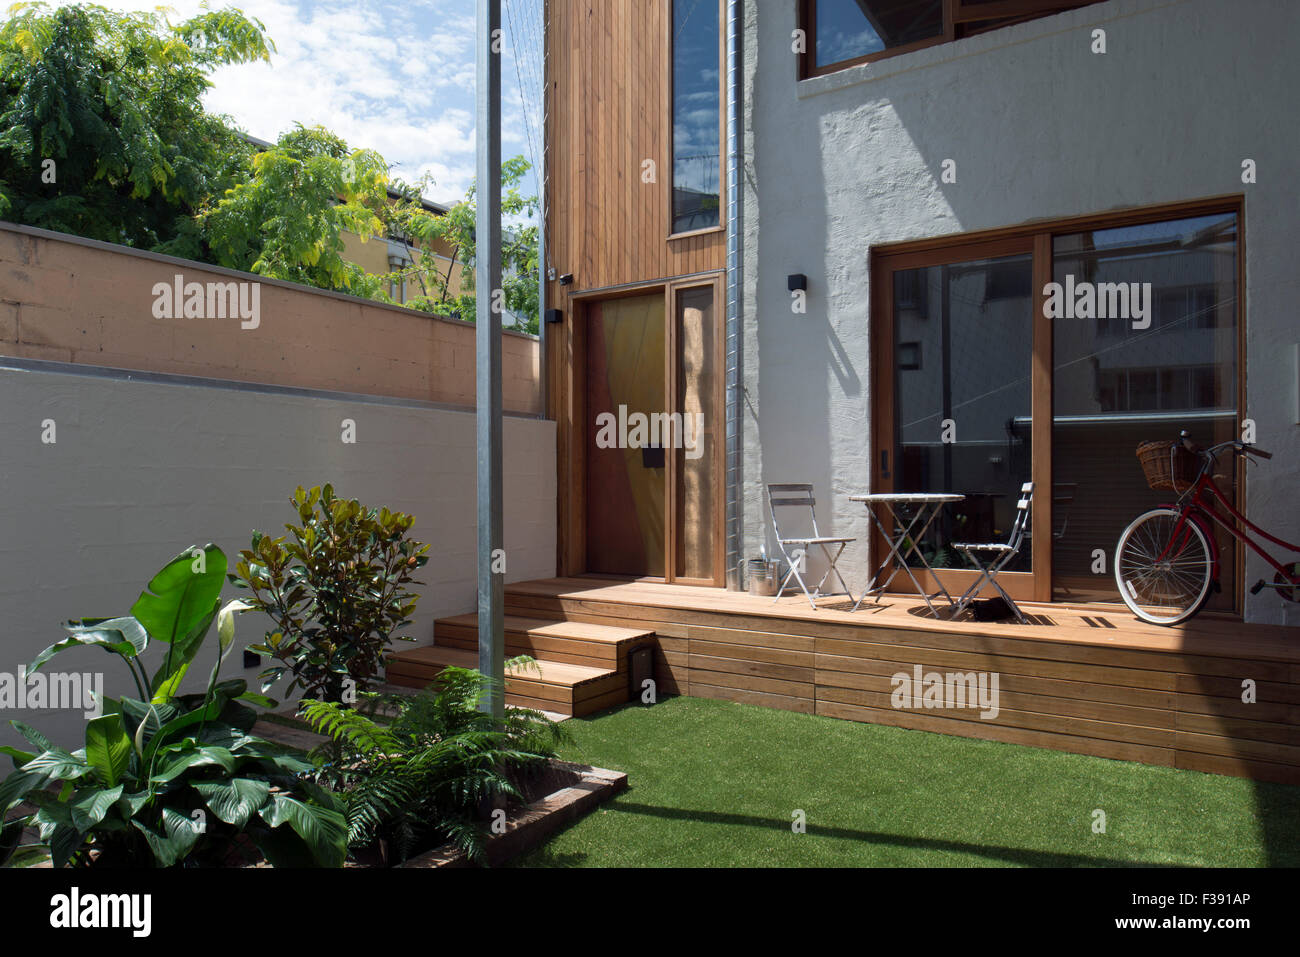 Entry courtyard with small terrace, garden and artificial